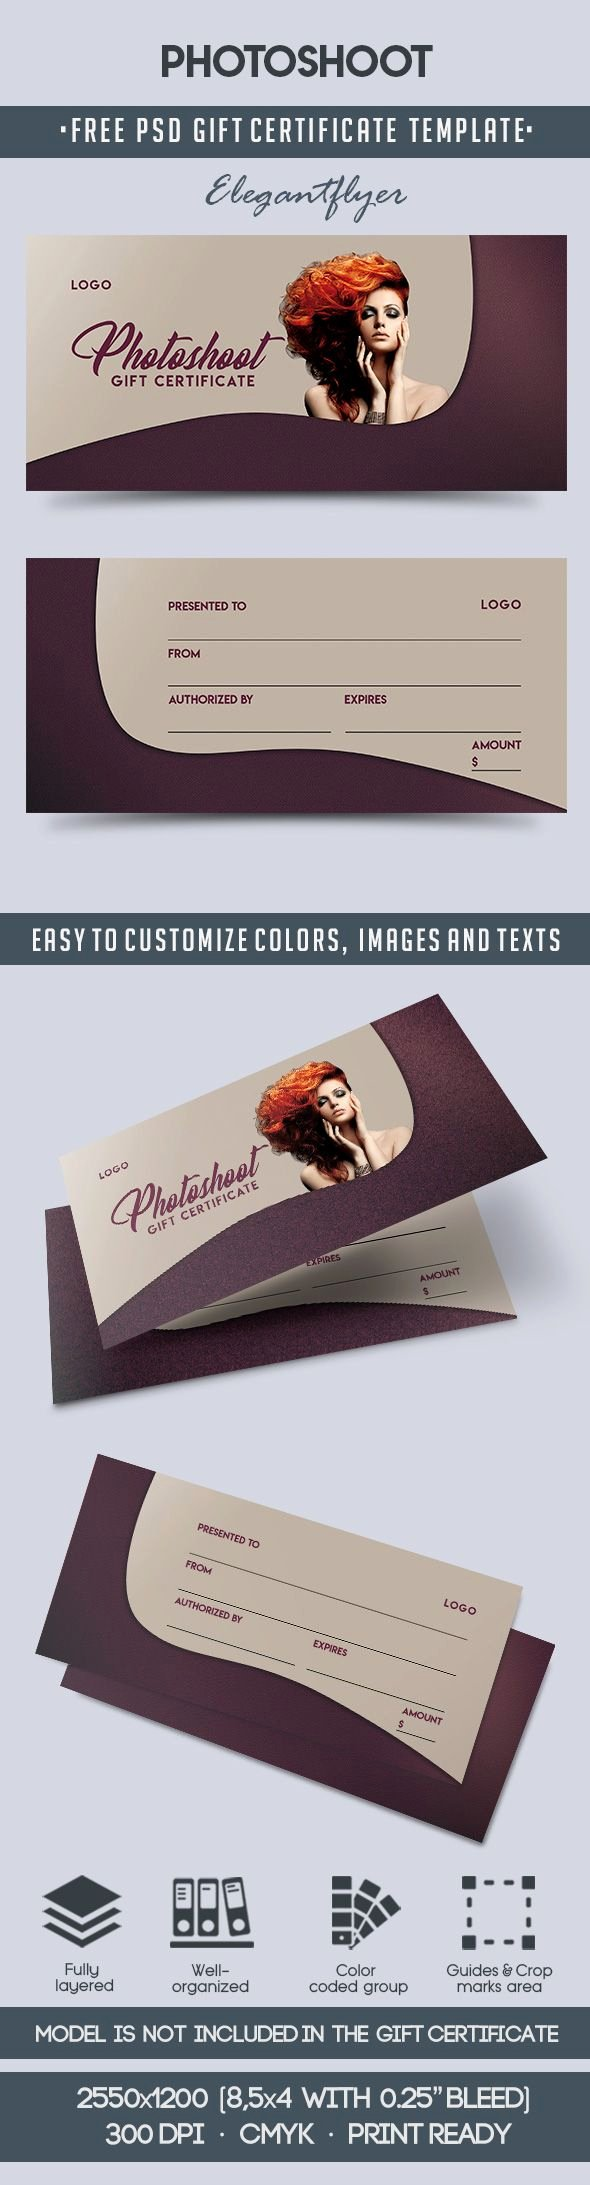 Free Photo Session Gift Certificate Template Lovely Shoot – Free Gift Certificate Psd Template – by